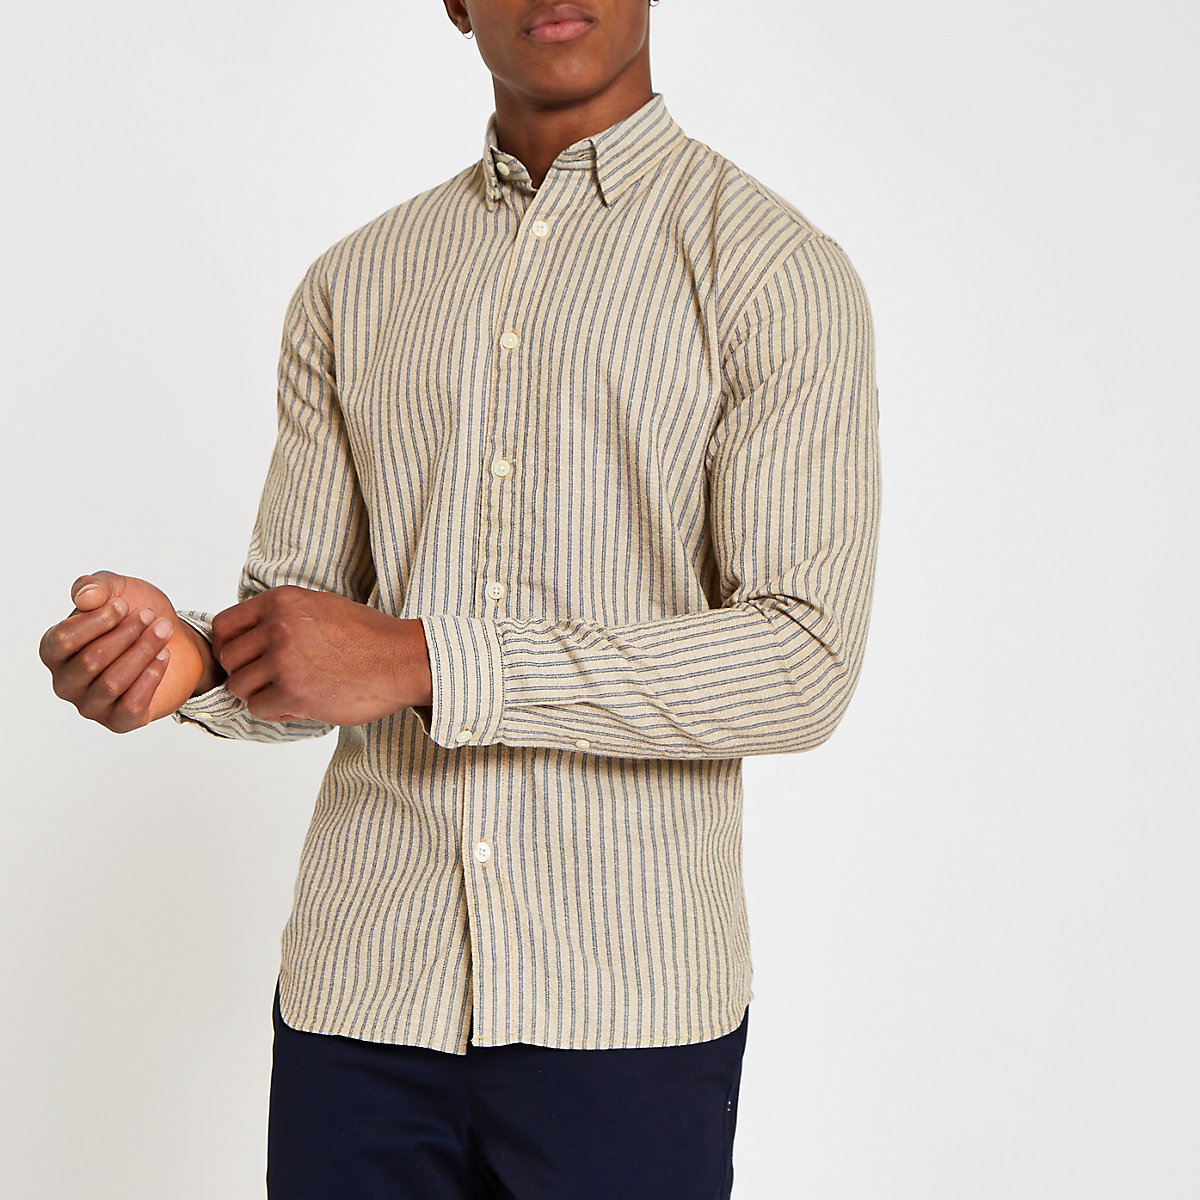 Selected Homme grey striped shirt